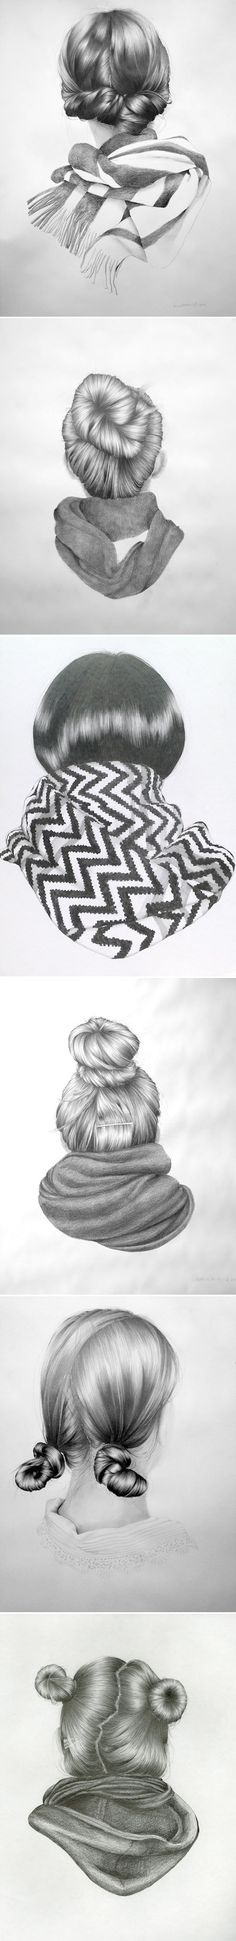 Nettie Wakefield - people who can draw such realistic hair are to be envied